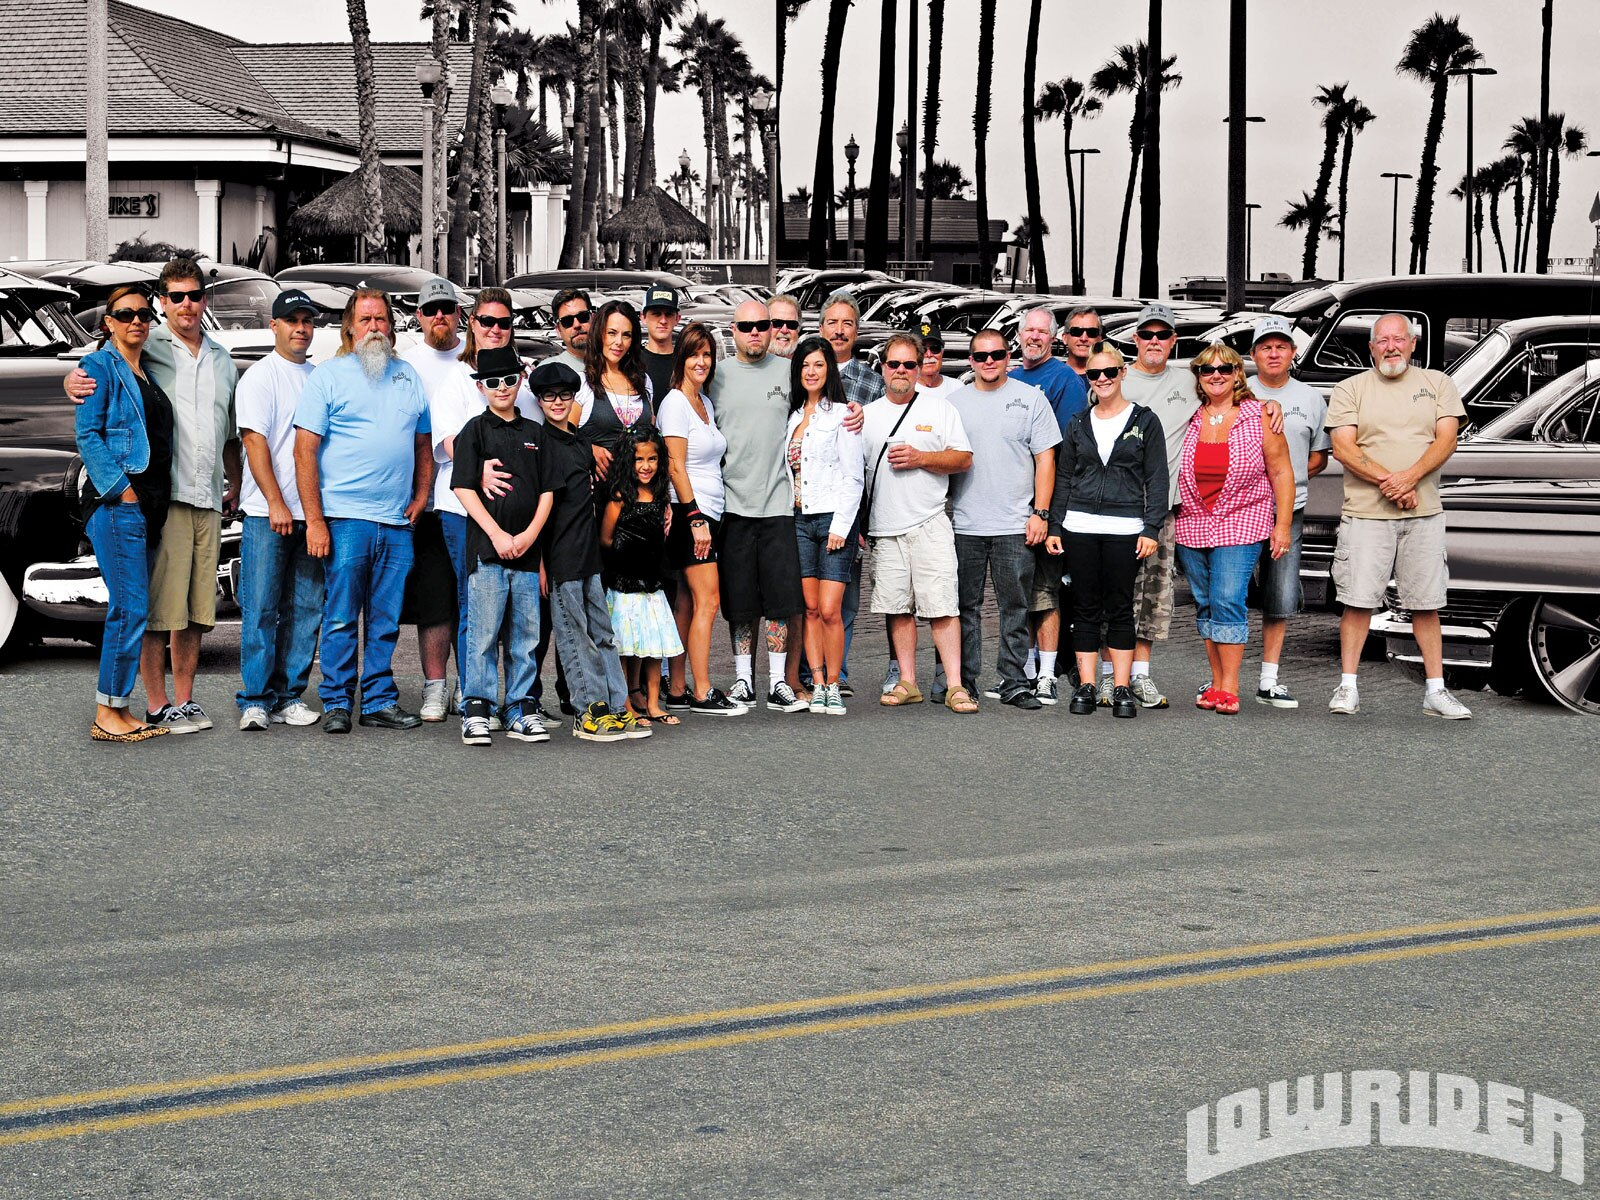 lrmp_1012_01_o-hb_gabacho_cc-group_photo6